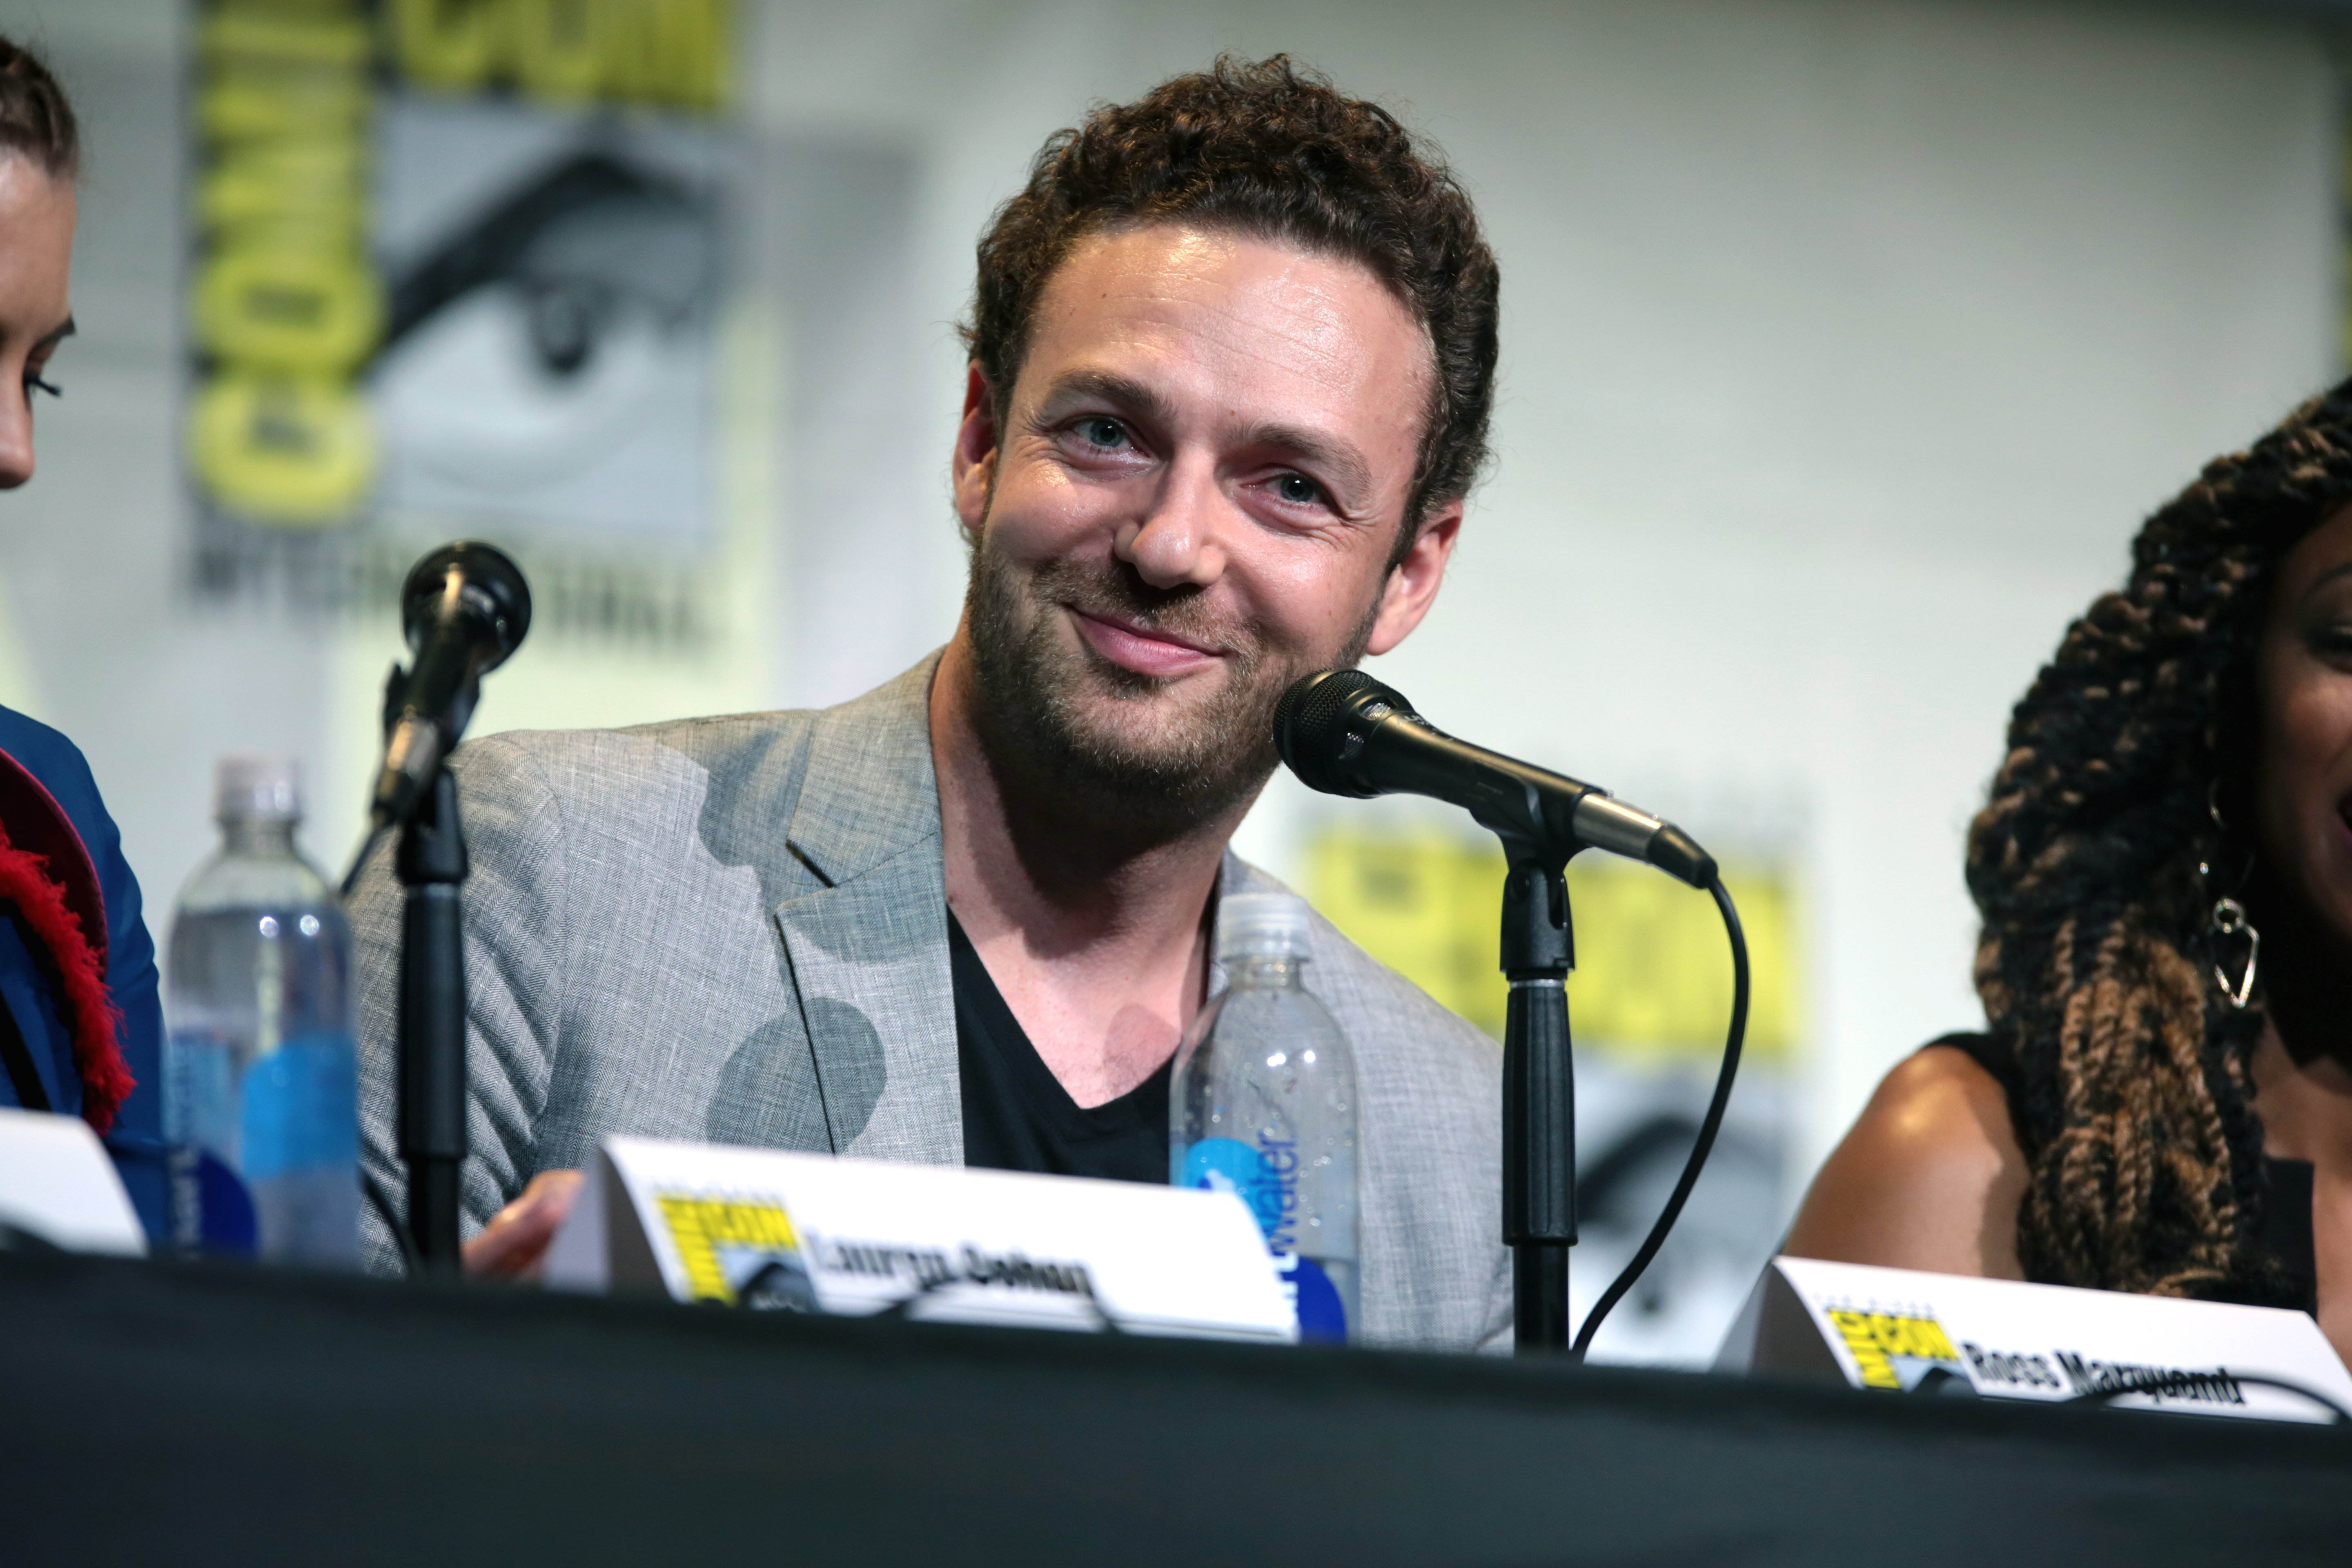 """Ross Marquand speaking at the San Diego Comic Con International for """"The Walking Dead"""" /CC BY-SA 2.0/ Gage Skidmore / flickr"""